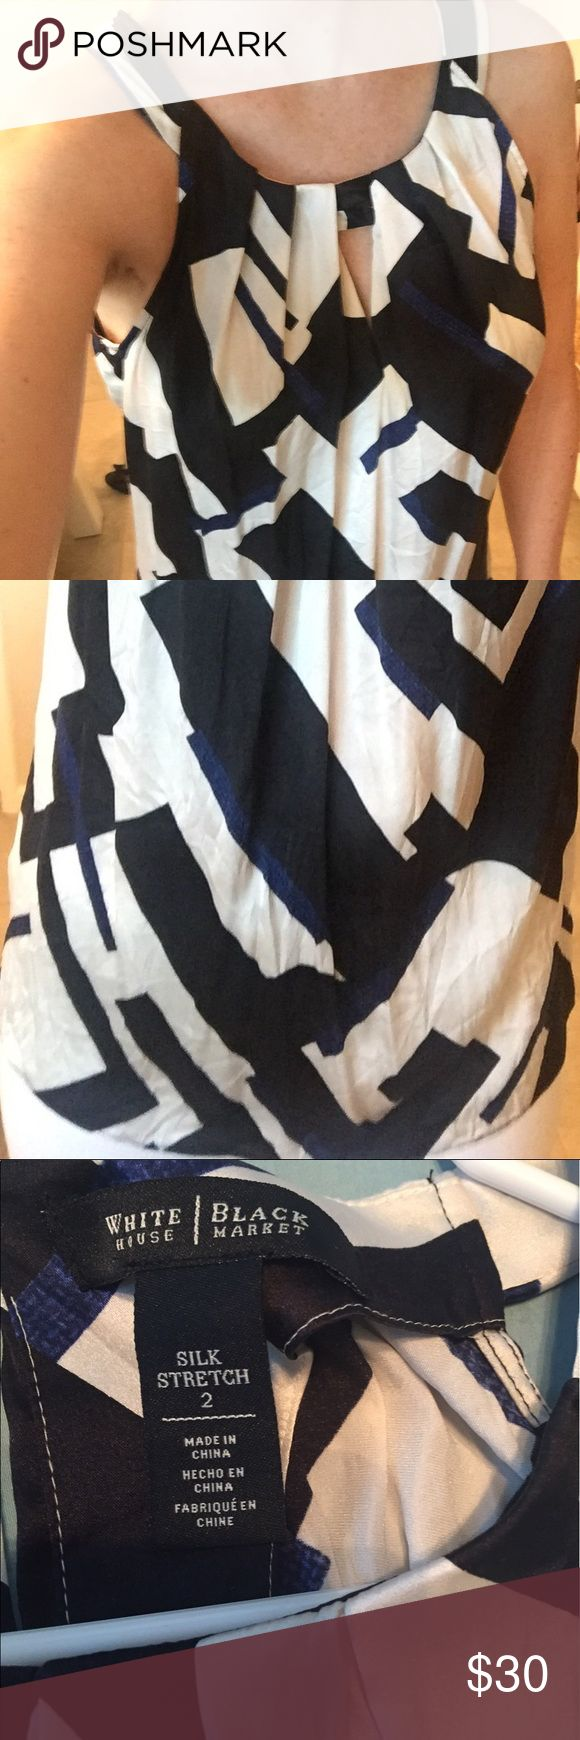 WHBM Silk Sleeveless top White, black, and blue this loose flow fitting top is perfect with jeans or under a blazer for work. It has a eye hole at the top but is not too revealing. I have only worn it twice. Accepting offers. White House Black Market Tops